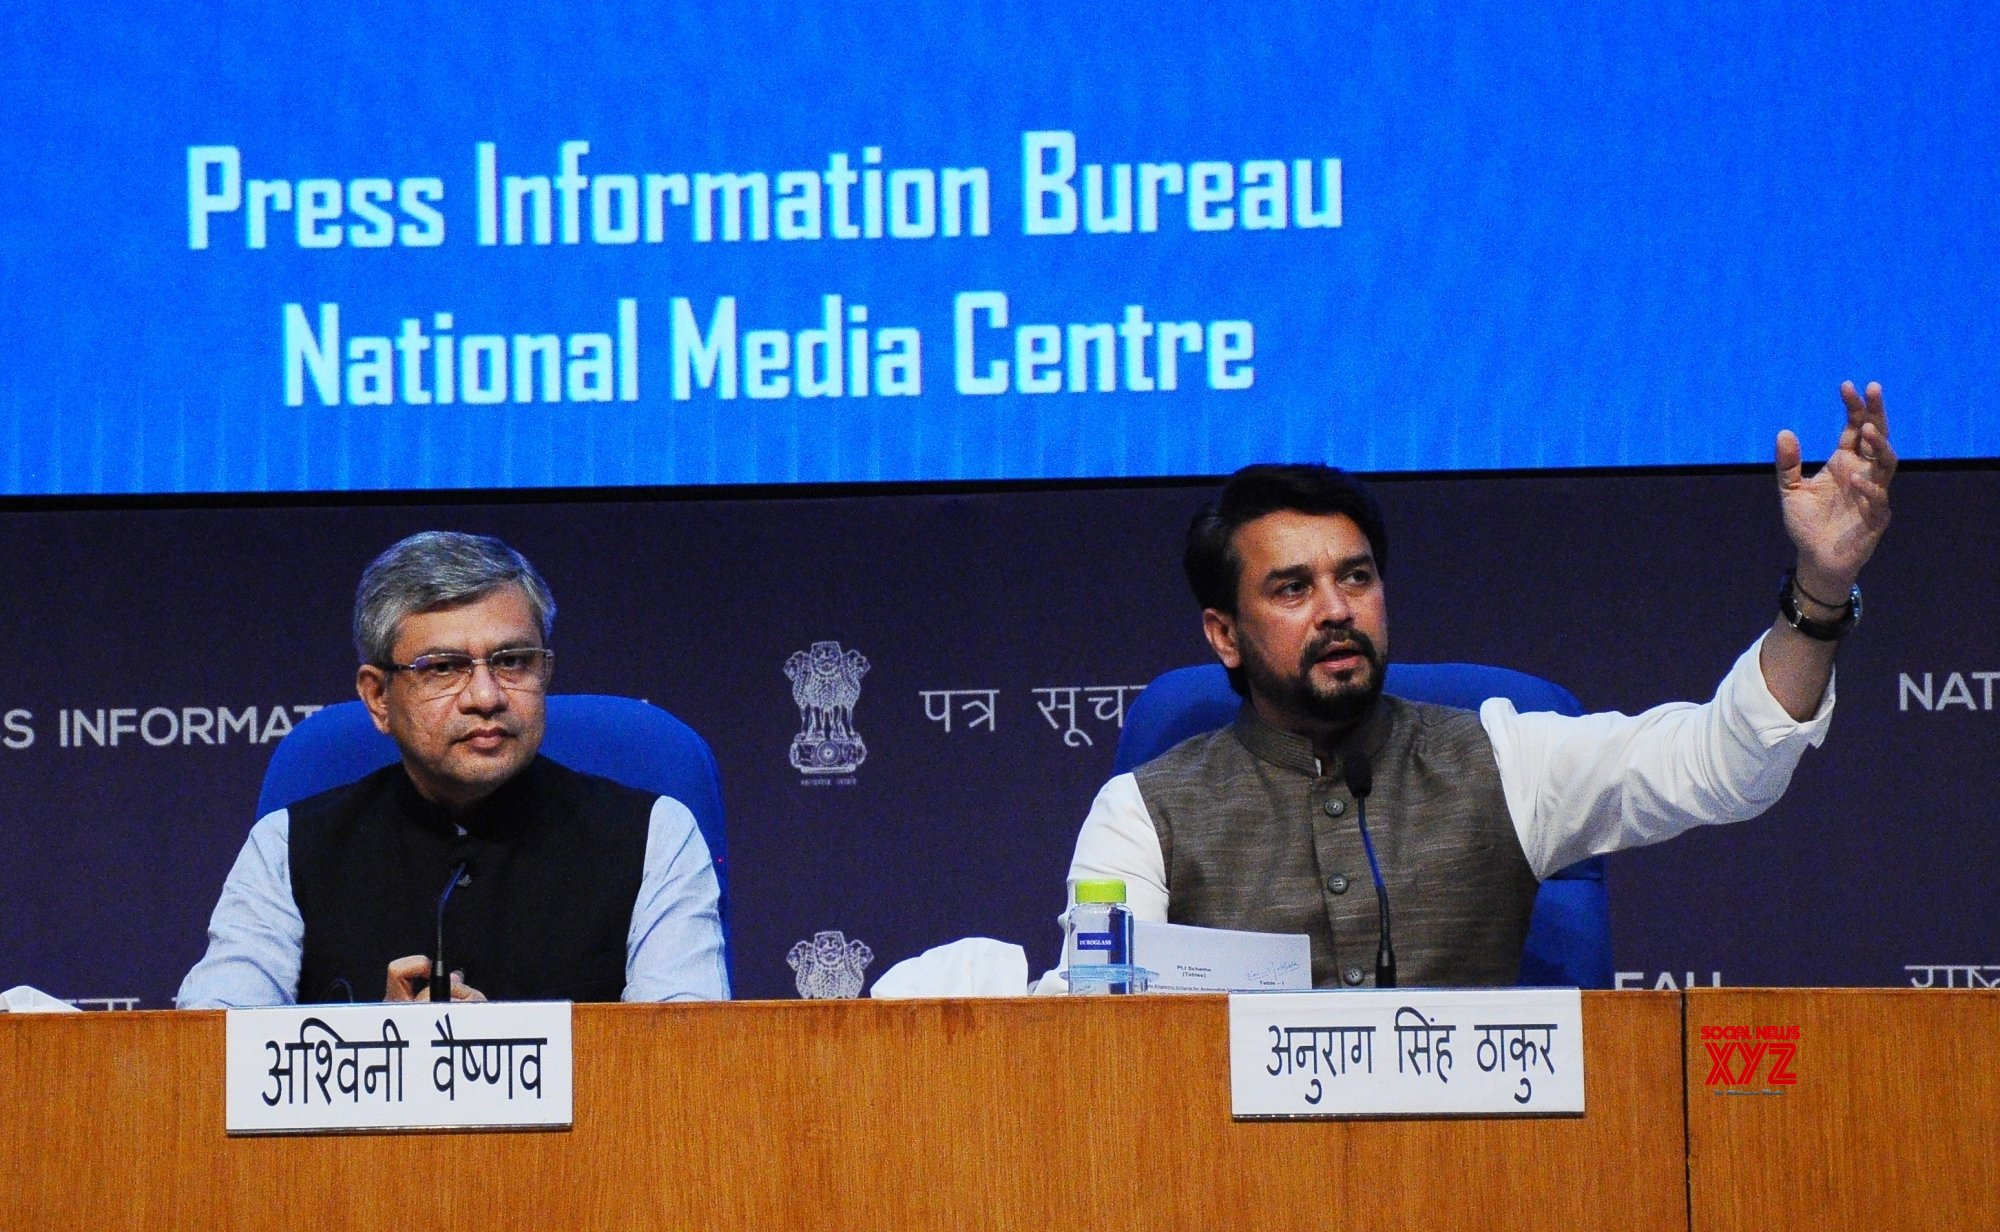 New Delhi: Union Ministers Anurag Singh Thakur and - Ashwini Vaishnaw brief the press on Cabinet decisions at National Media Centre in New Delhi, 15 September, 2021 #Gallery